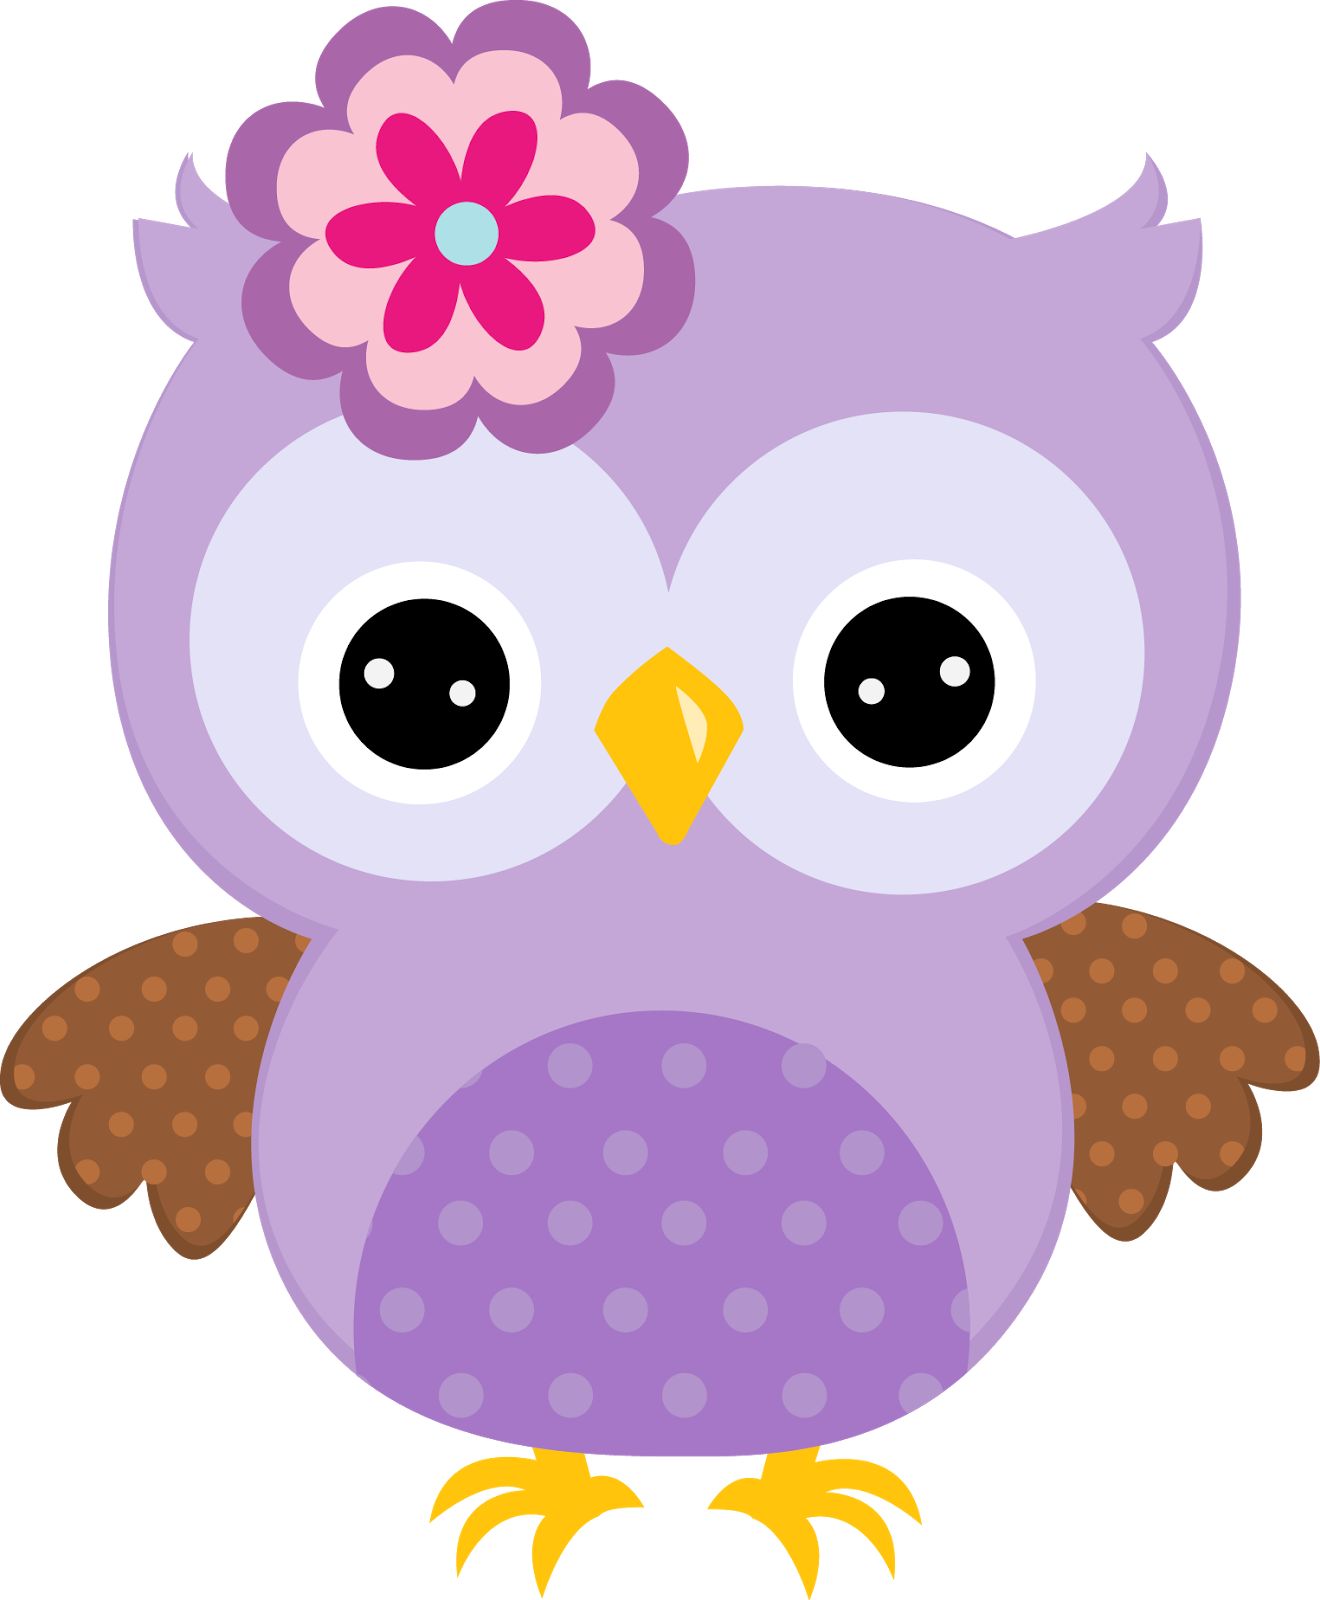 Ibar aa xnodg png. Clipart winter owl